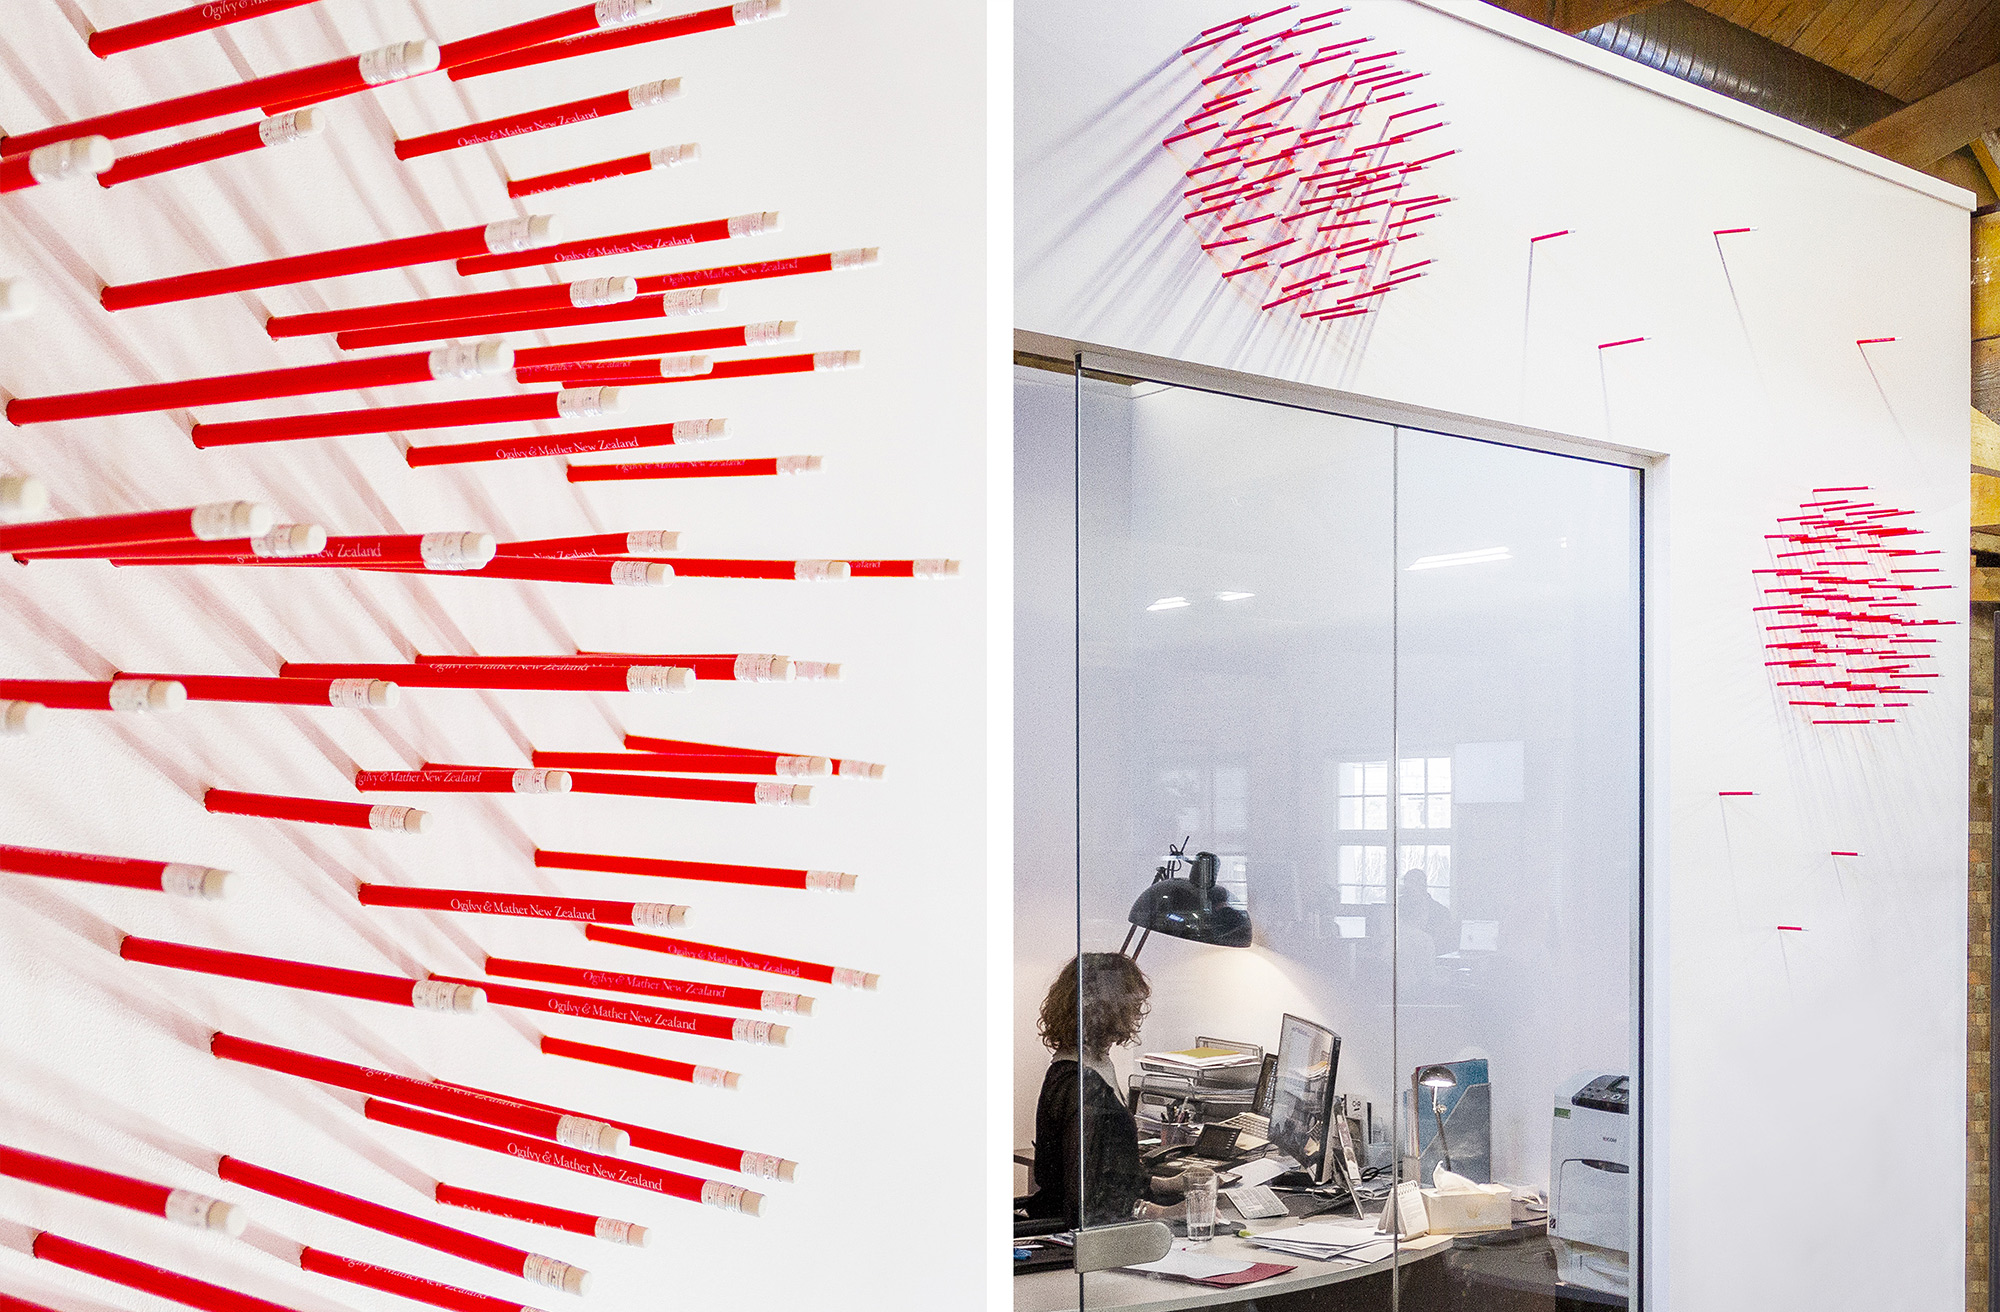 Pencils used in experiential graphics for Ogilvy & Mather New Zealand HQ. @enviromeant.com